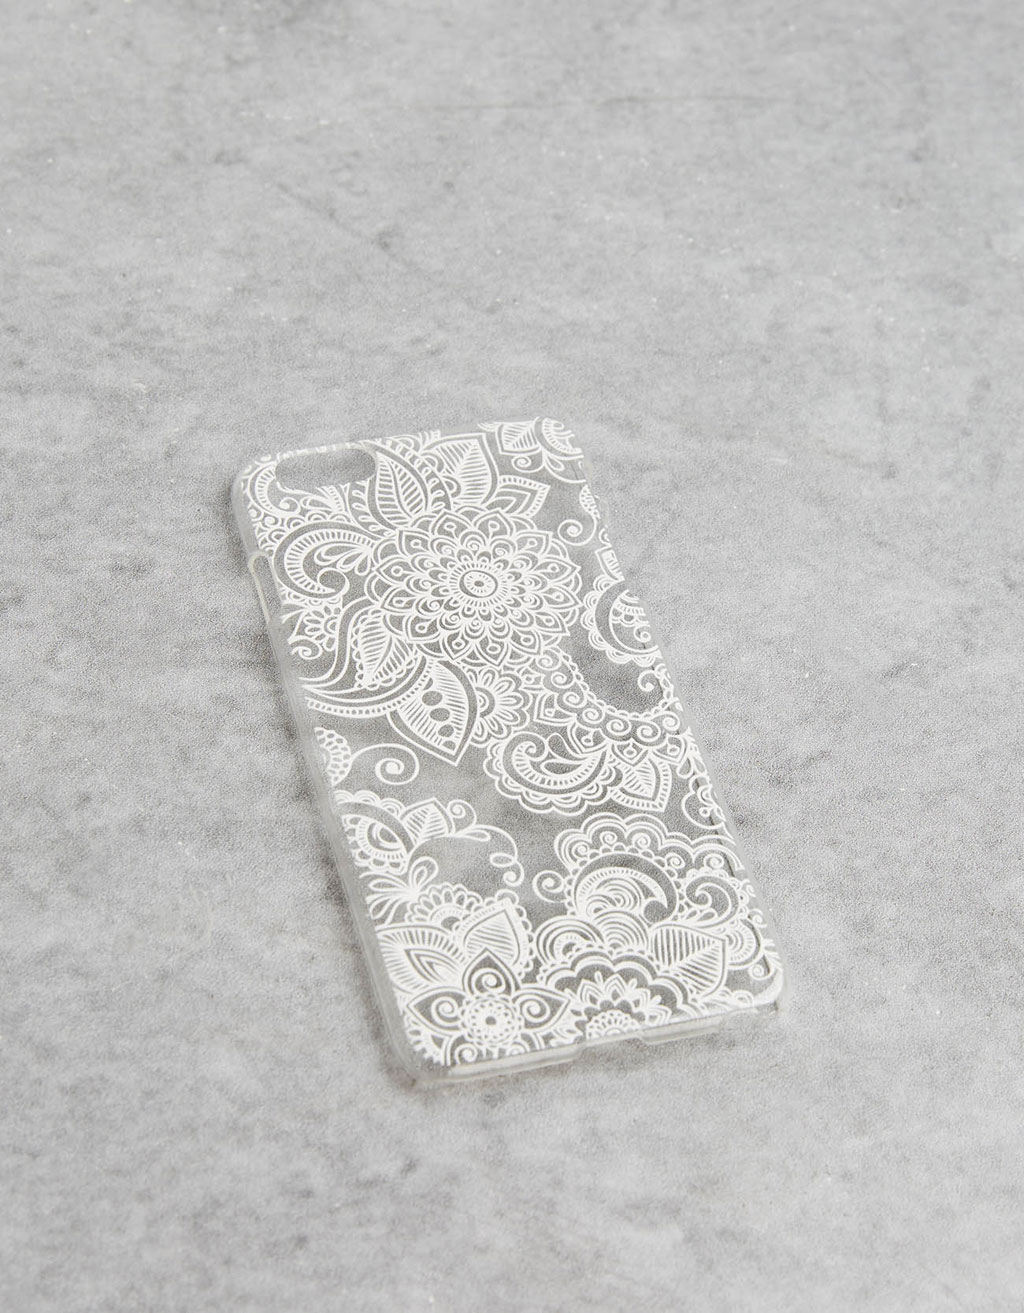 Carcasa relieve flores blancas iPhone 6 plus